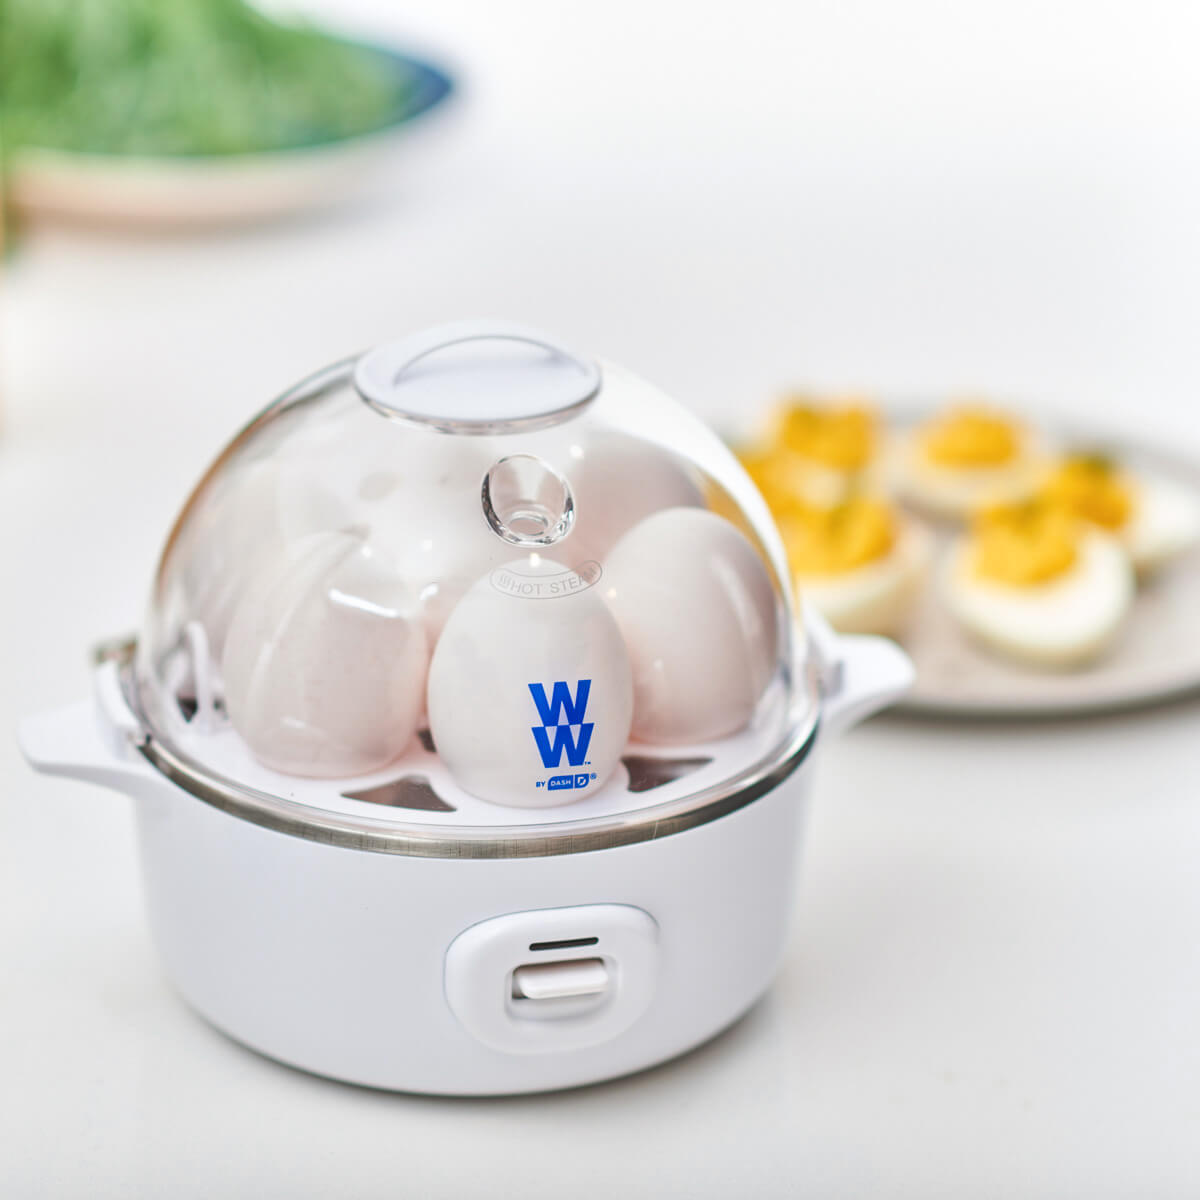 WW by Dash Express Egg Cooker - lifestyle 2